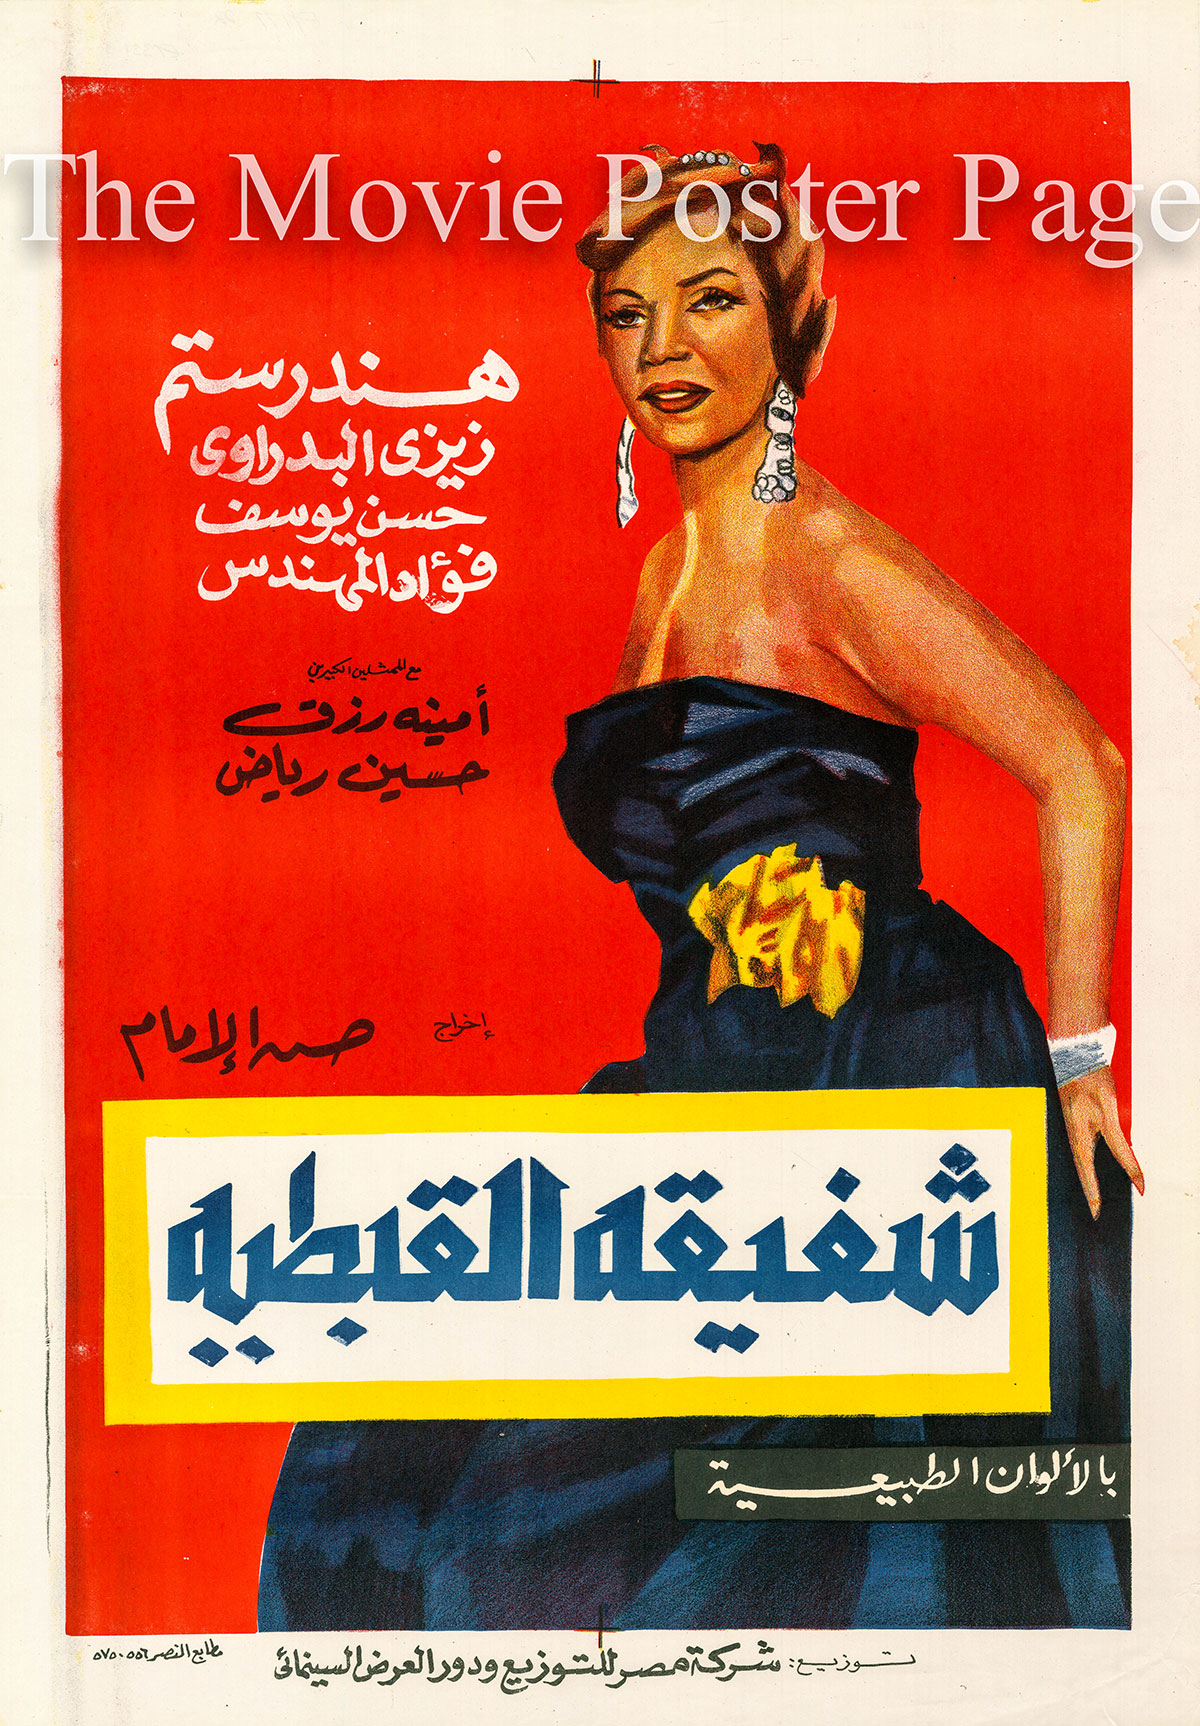 Pictured is an Egyptian poster for the 1963 Hassan Al Imam film Shafiqa the Copt, starring Hind Rostom.